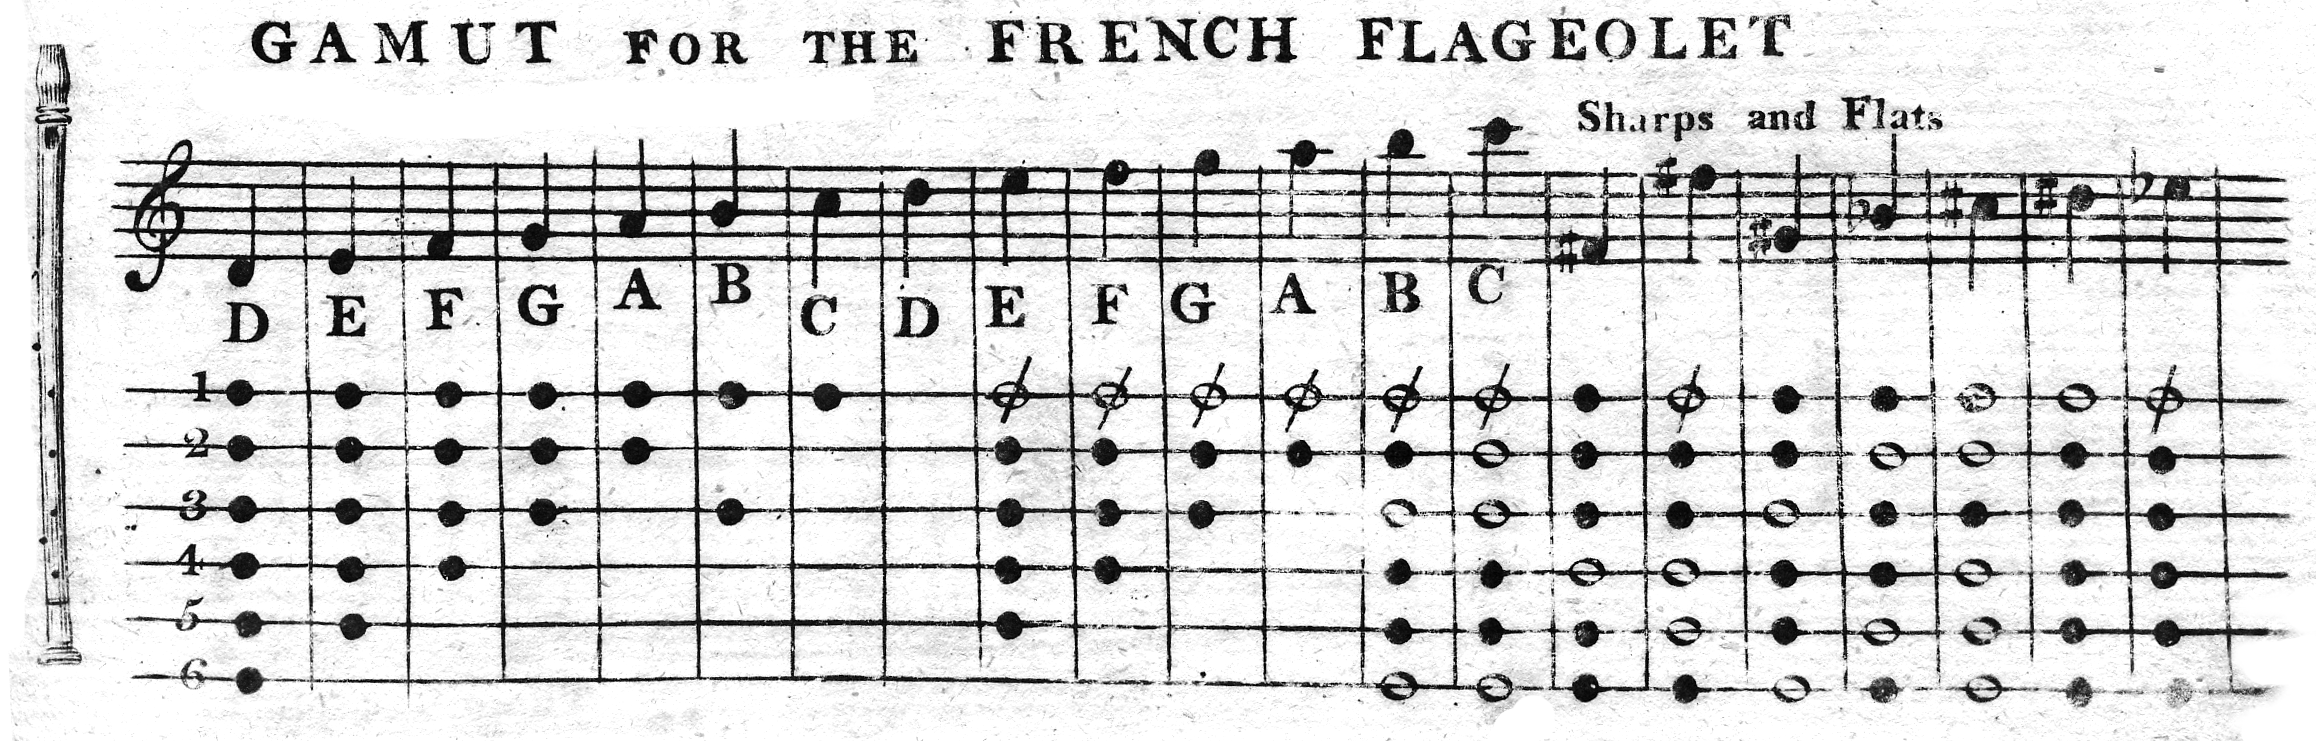 French flageolet fingering chart.